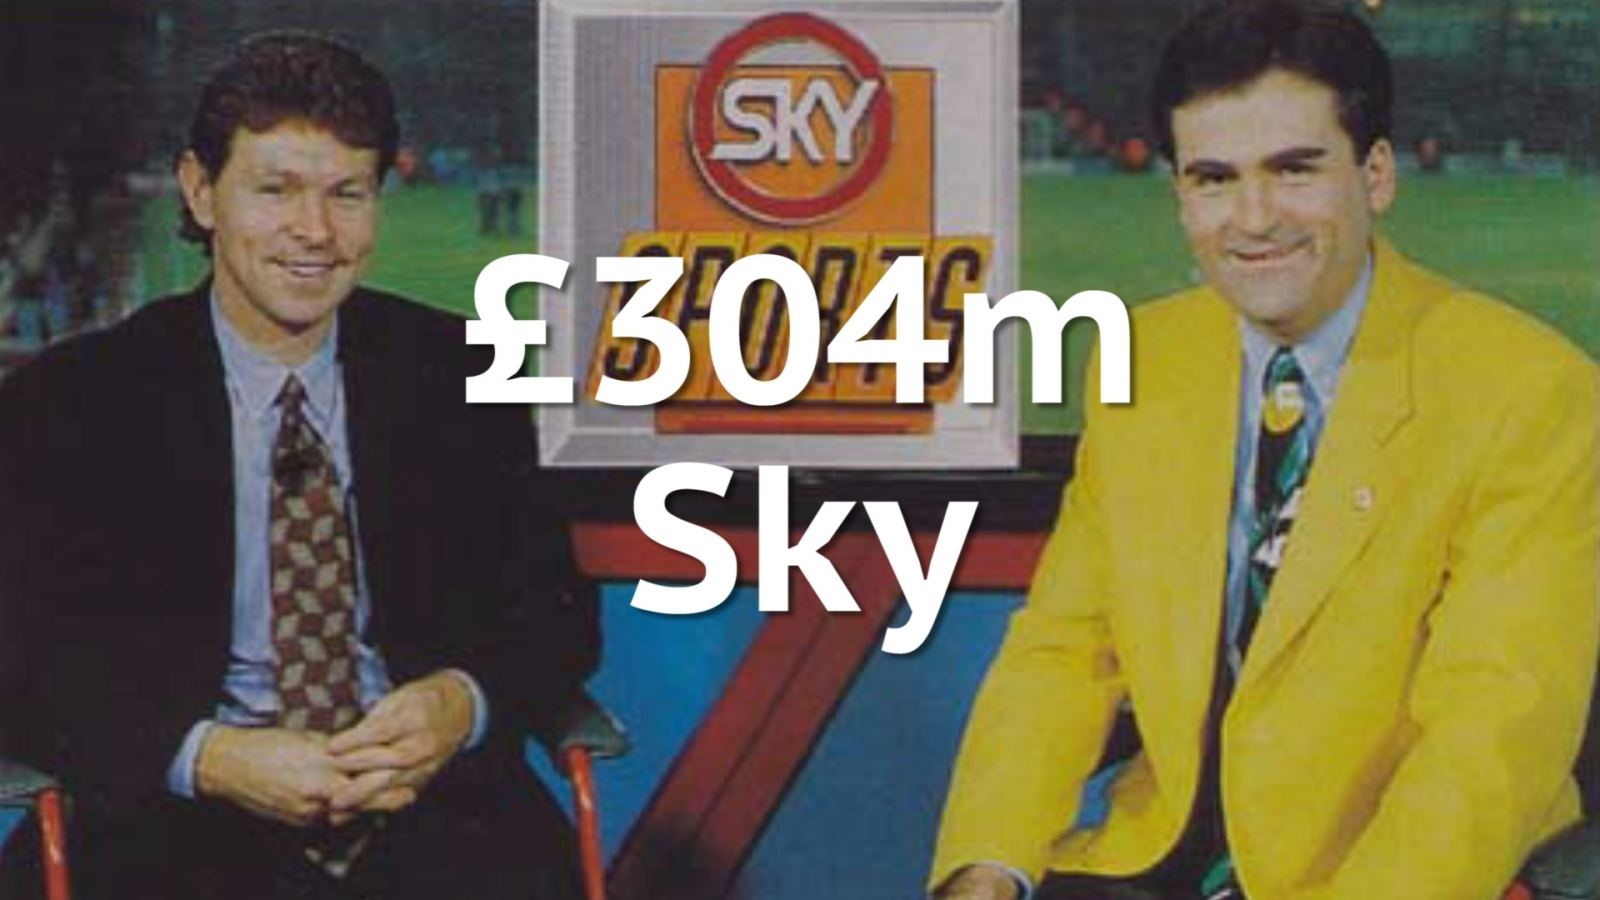 Cost of Premier league TV rights 1992